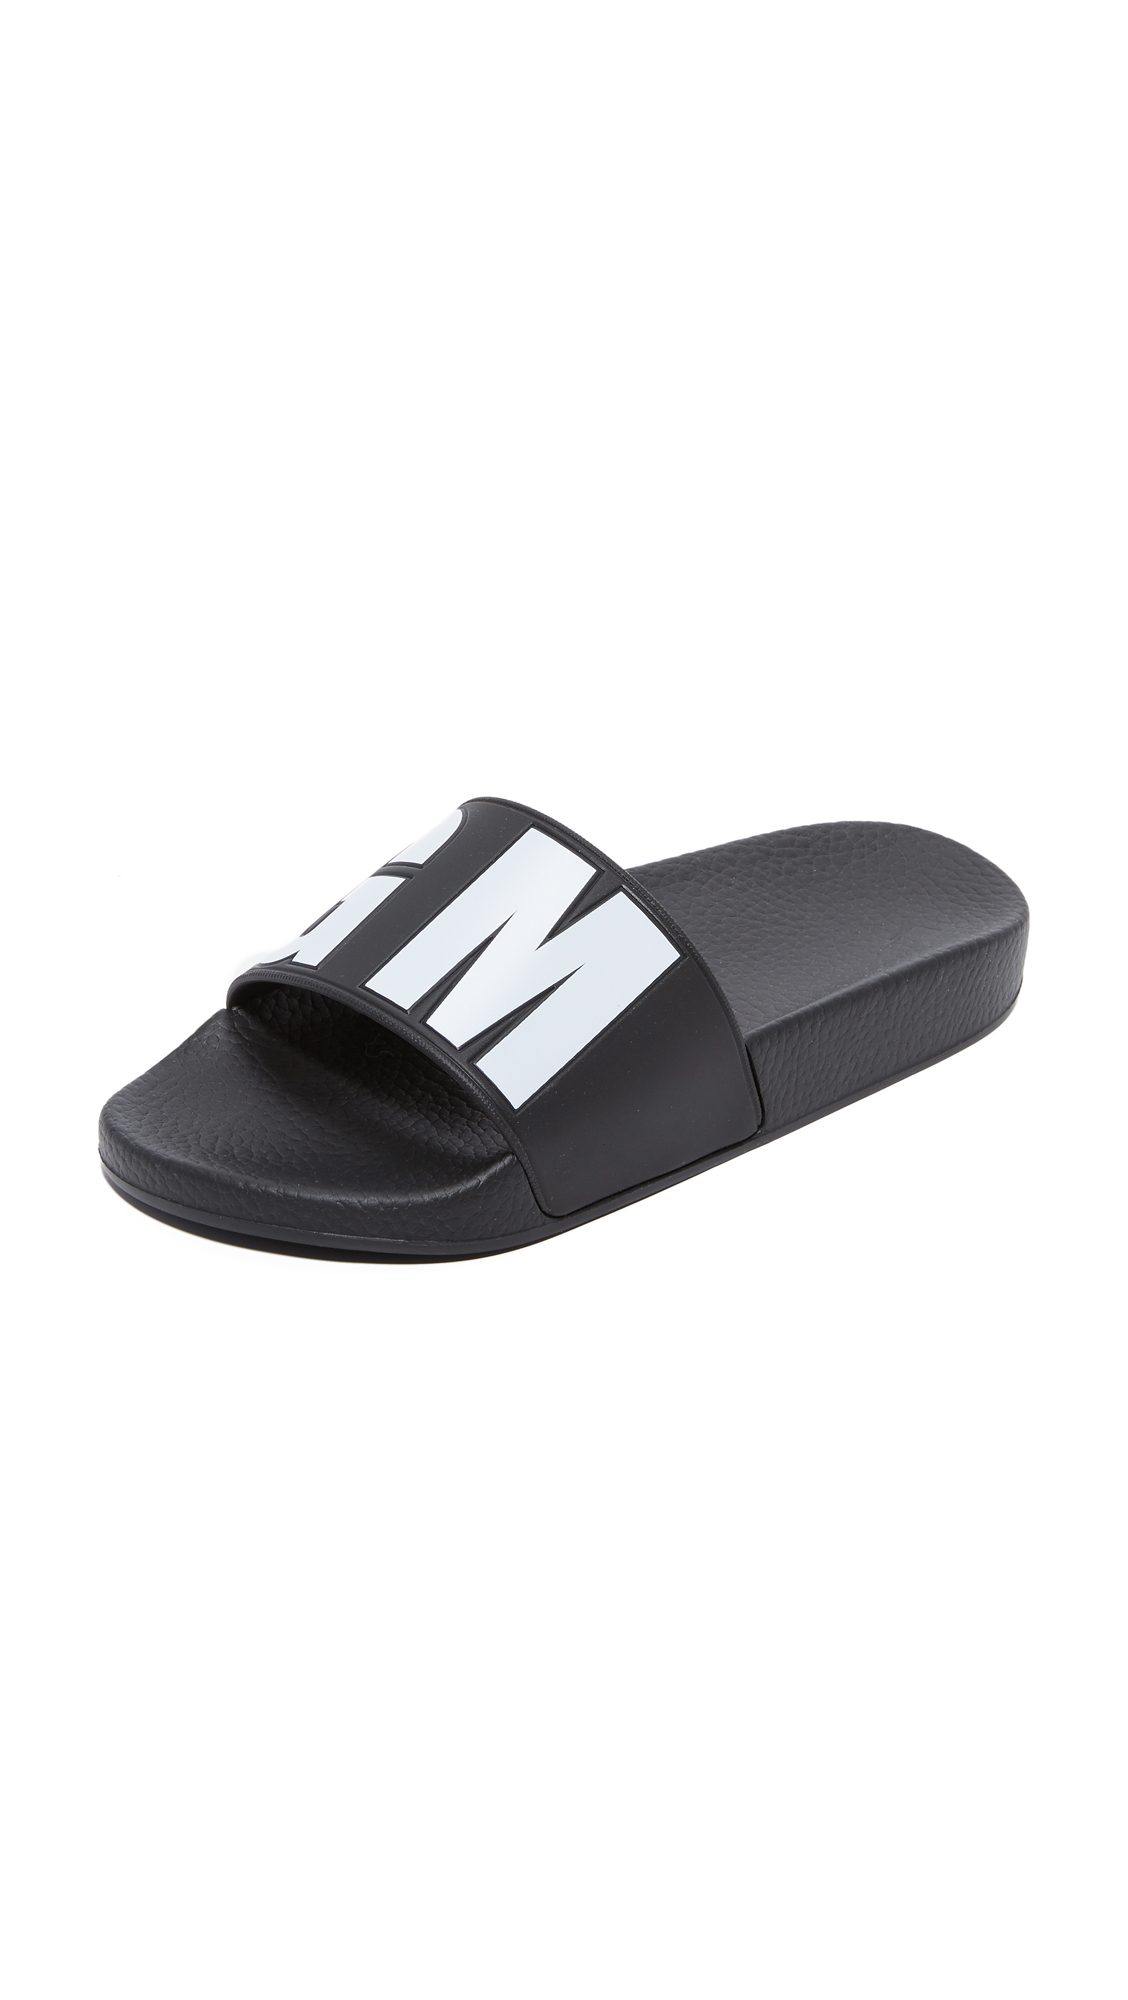 Bold logo lettering adds a graphic touch to these casual MSGM slides. Molded footbed and rubber sole. Fabric: Rubber. Made in Italy. This item cannot be gift boxed. Available sizes: 35,36,37,38,39,40,41